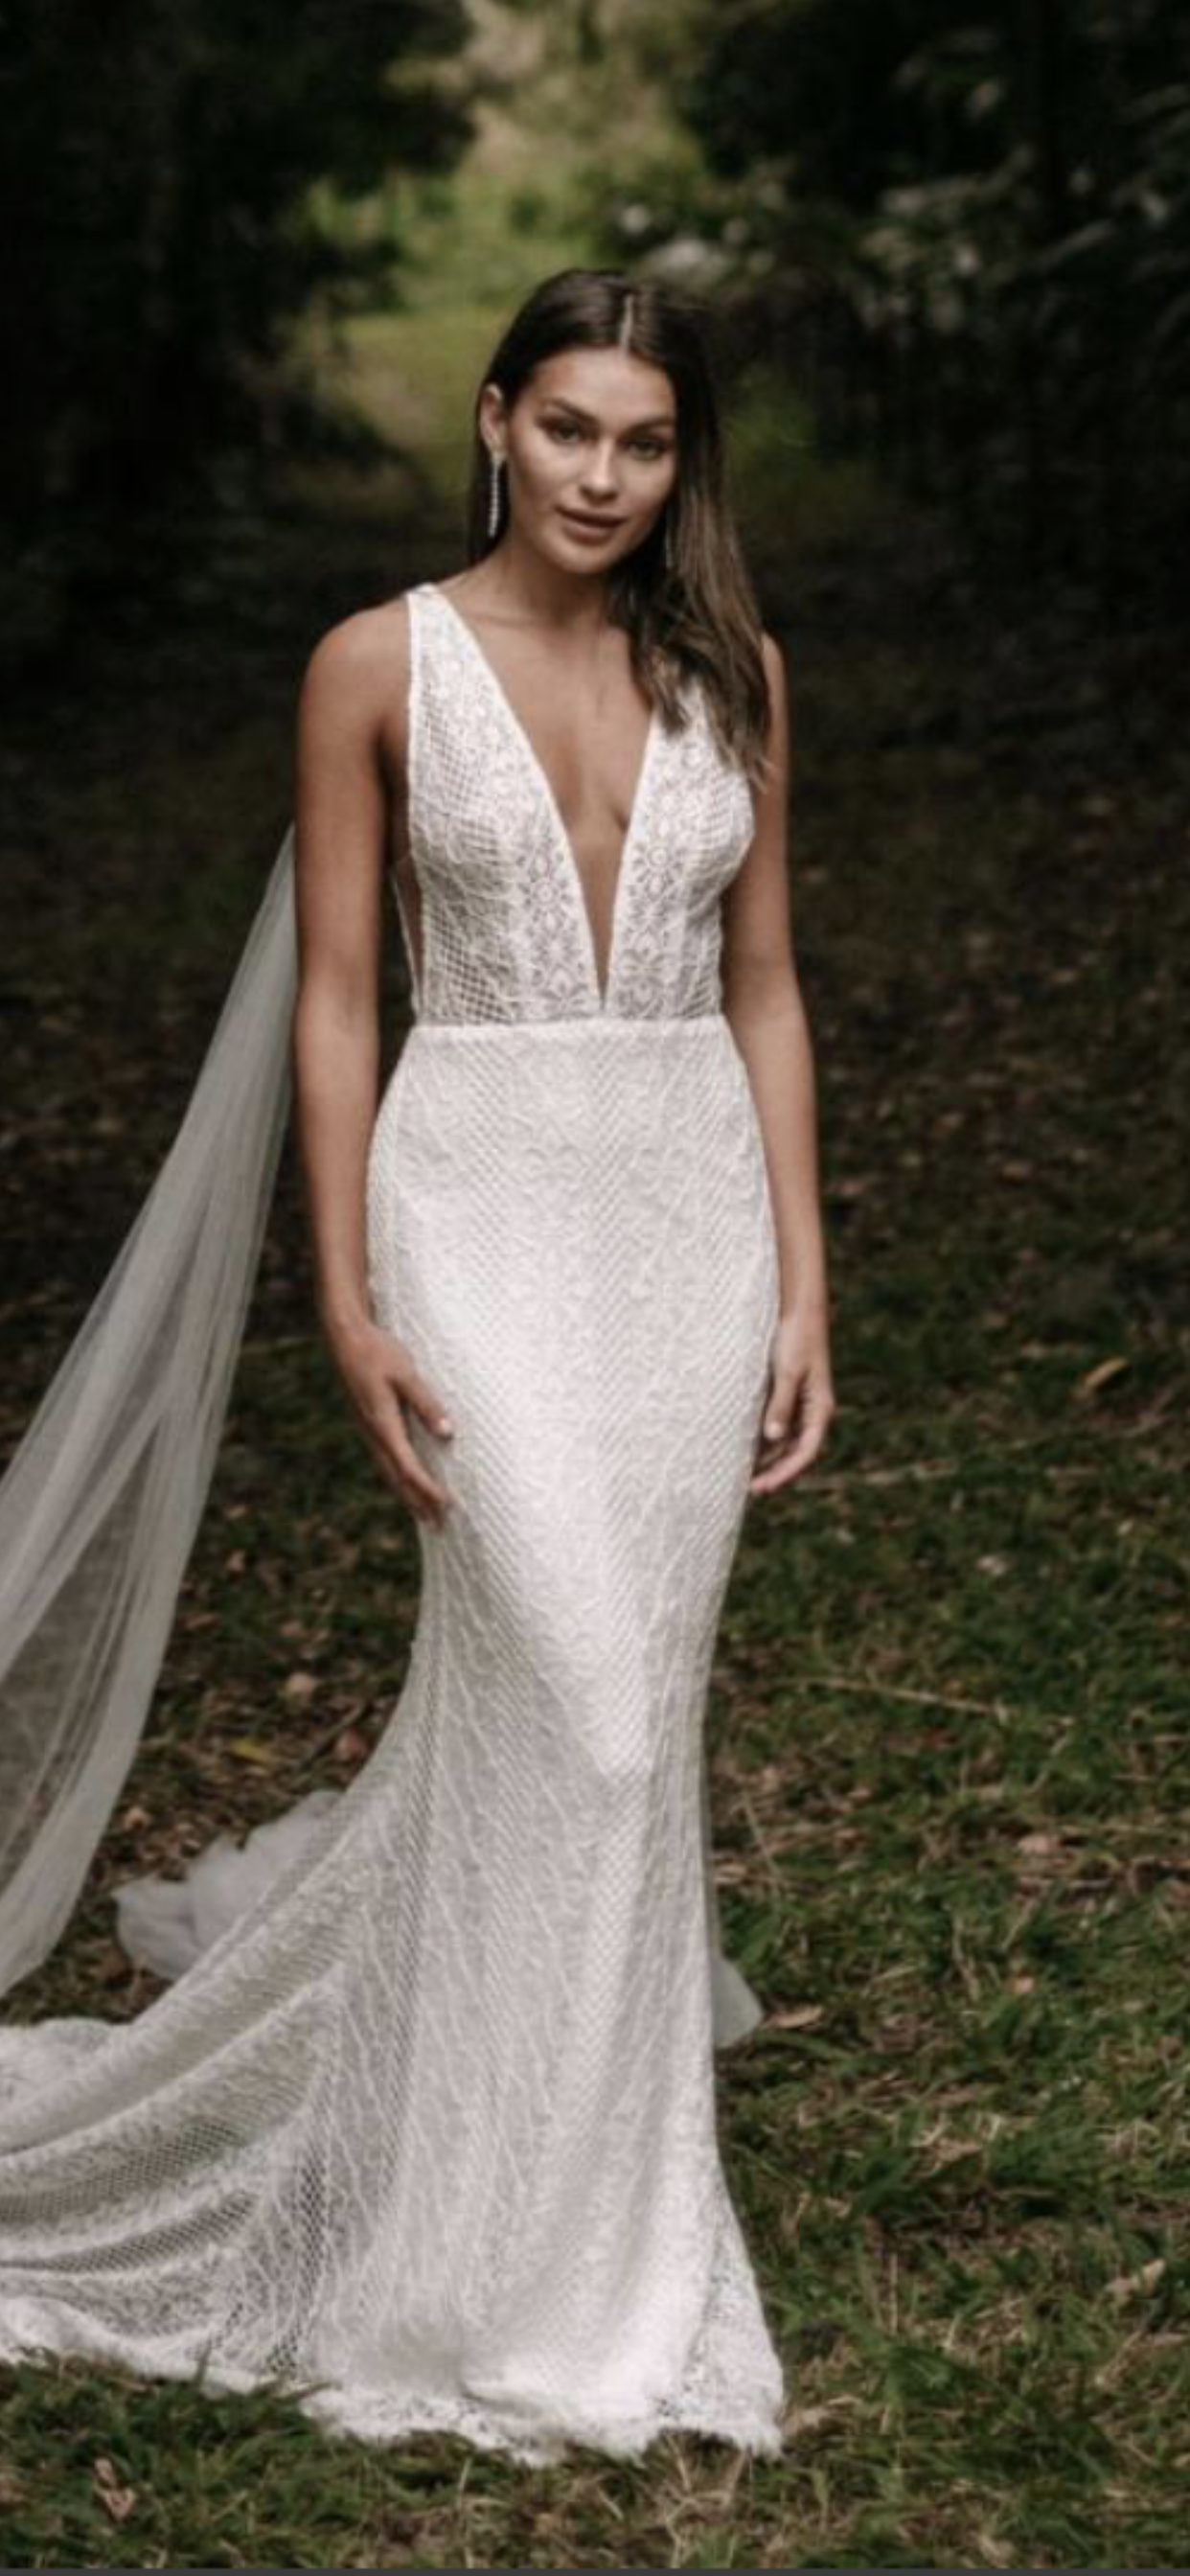 Made With Love In 2020 Consignment Wedding Dresses Bridal Dresses Sheath Wedding Dress